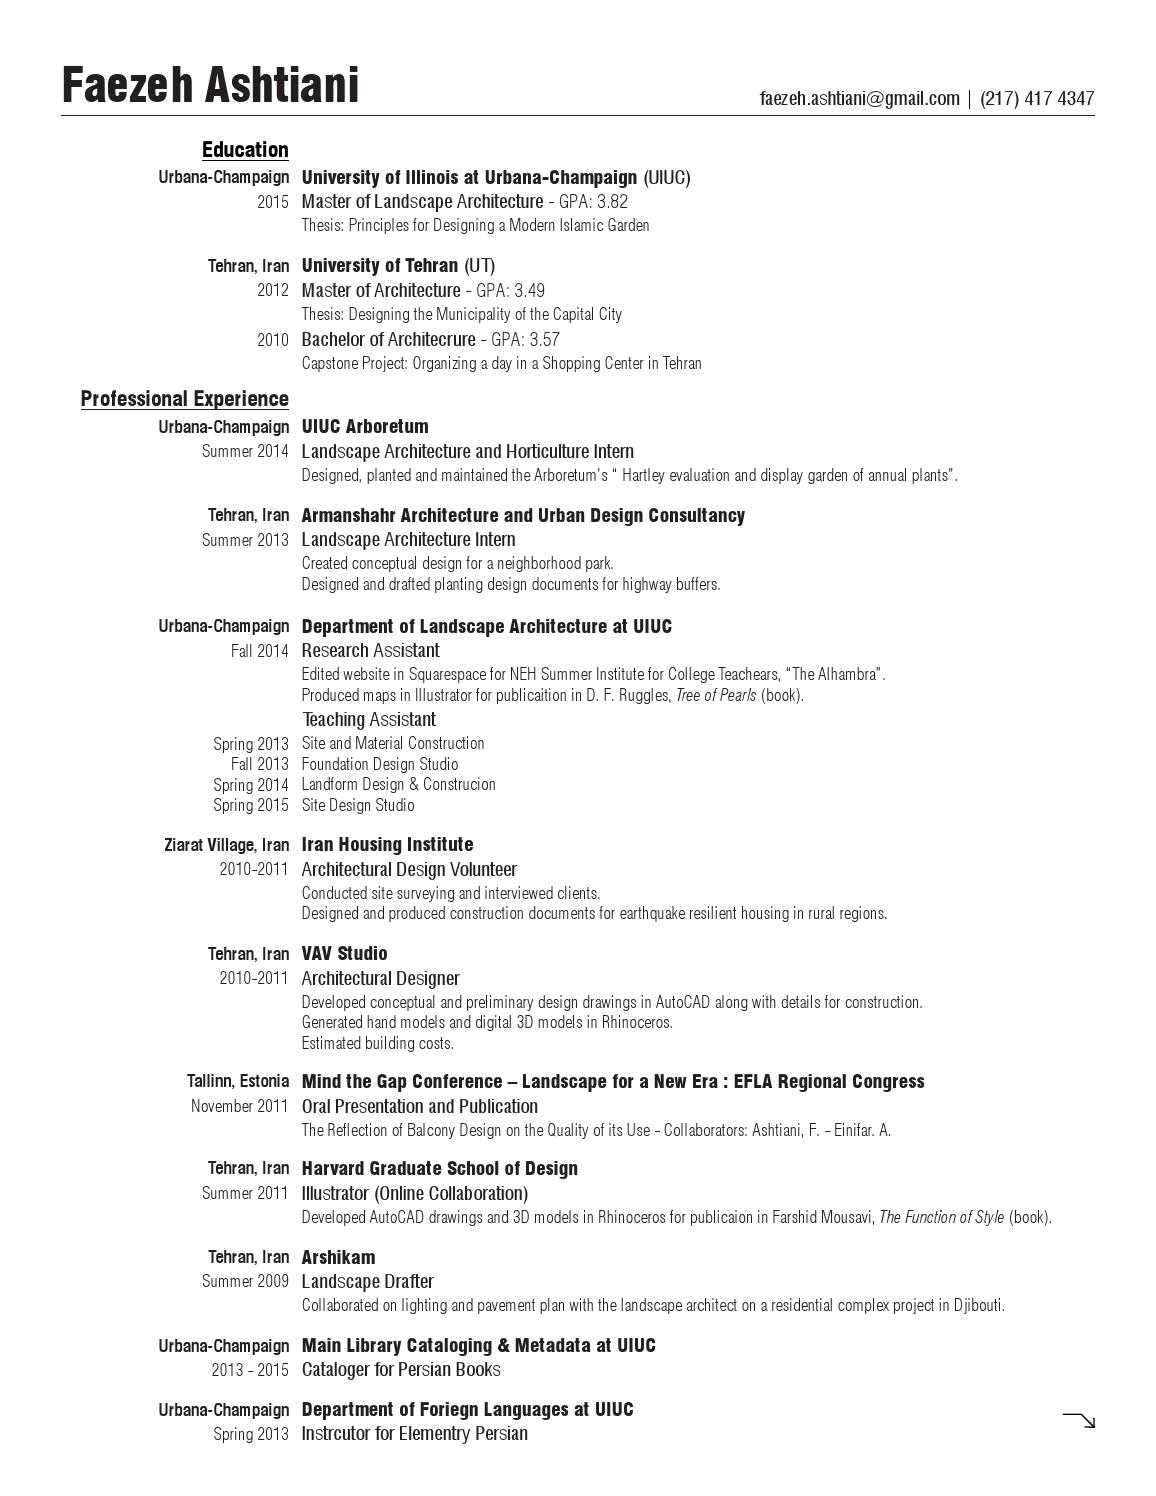 Uiuc Resume Faezeh Ashtiani Resume By Faezeh A Issuu